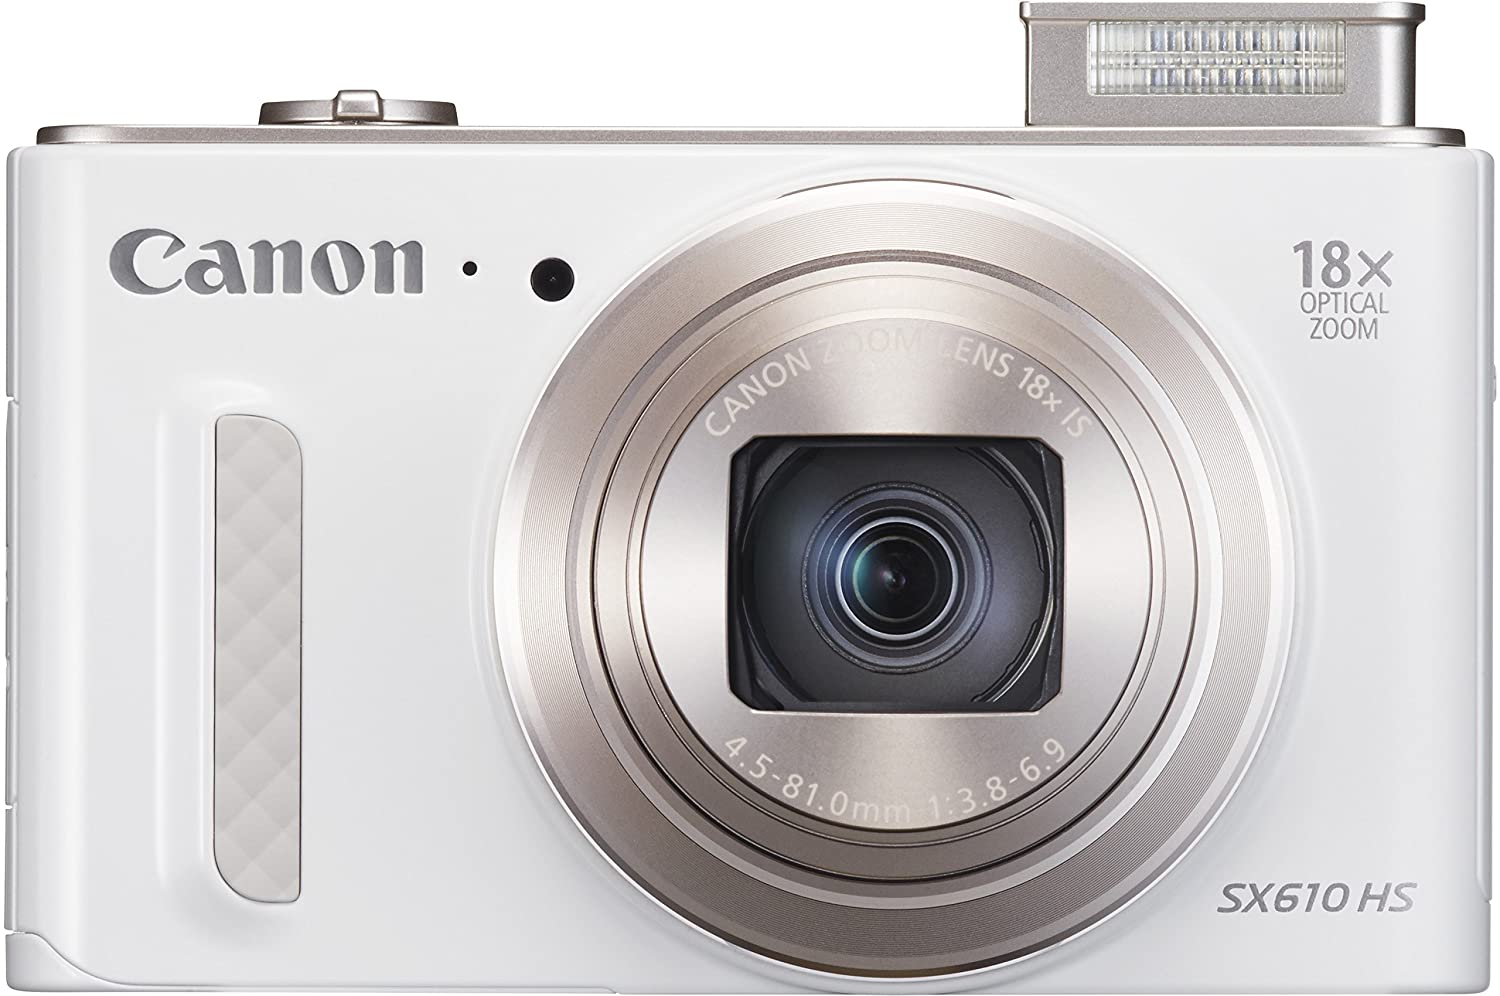 Canon PowerShot SX610 HS Digitalkamera 3 Zoll: Amazon.de: Kamera